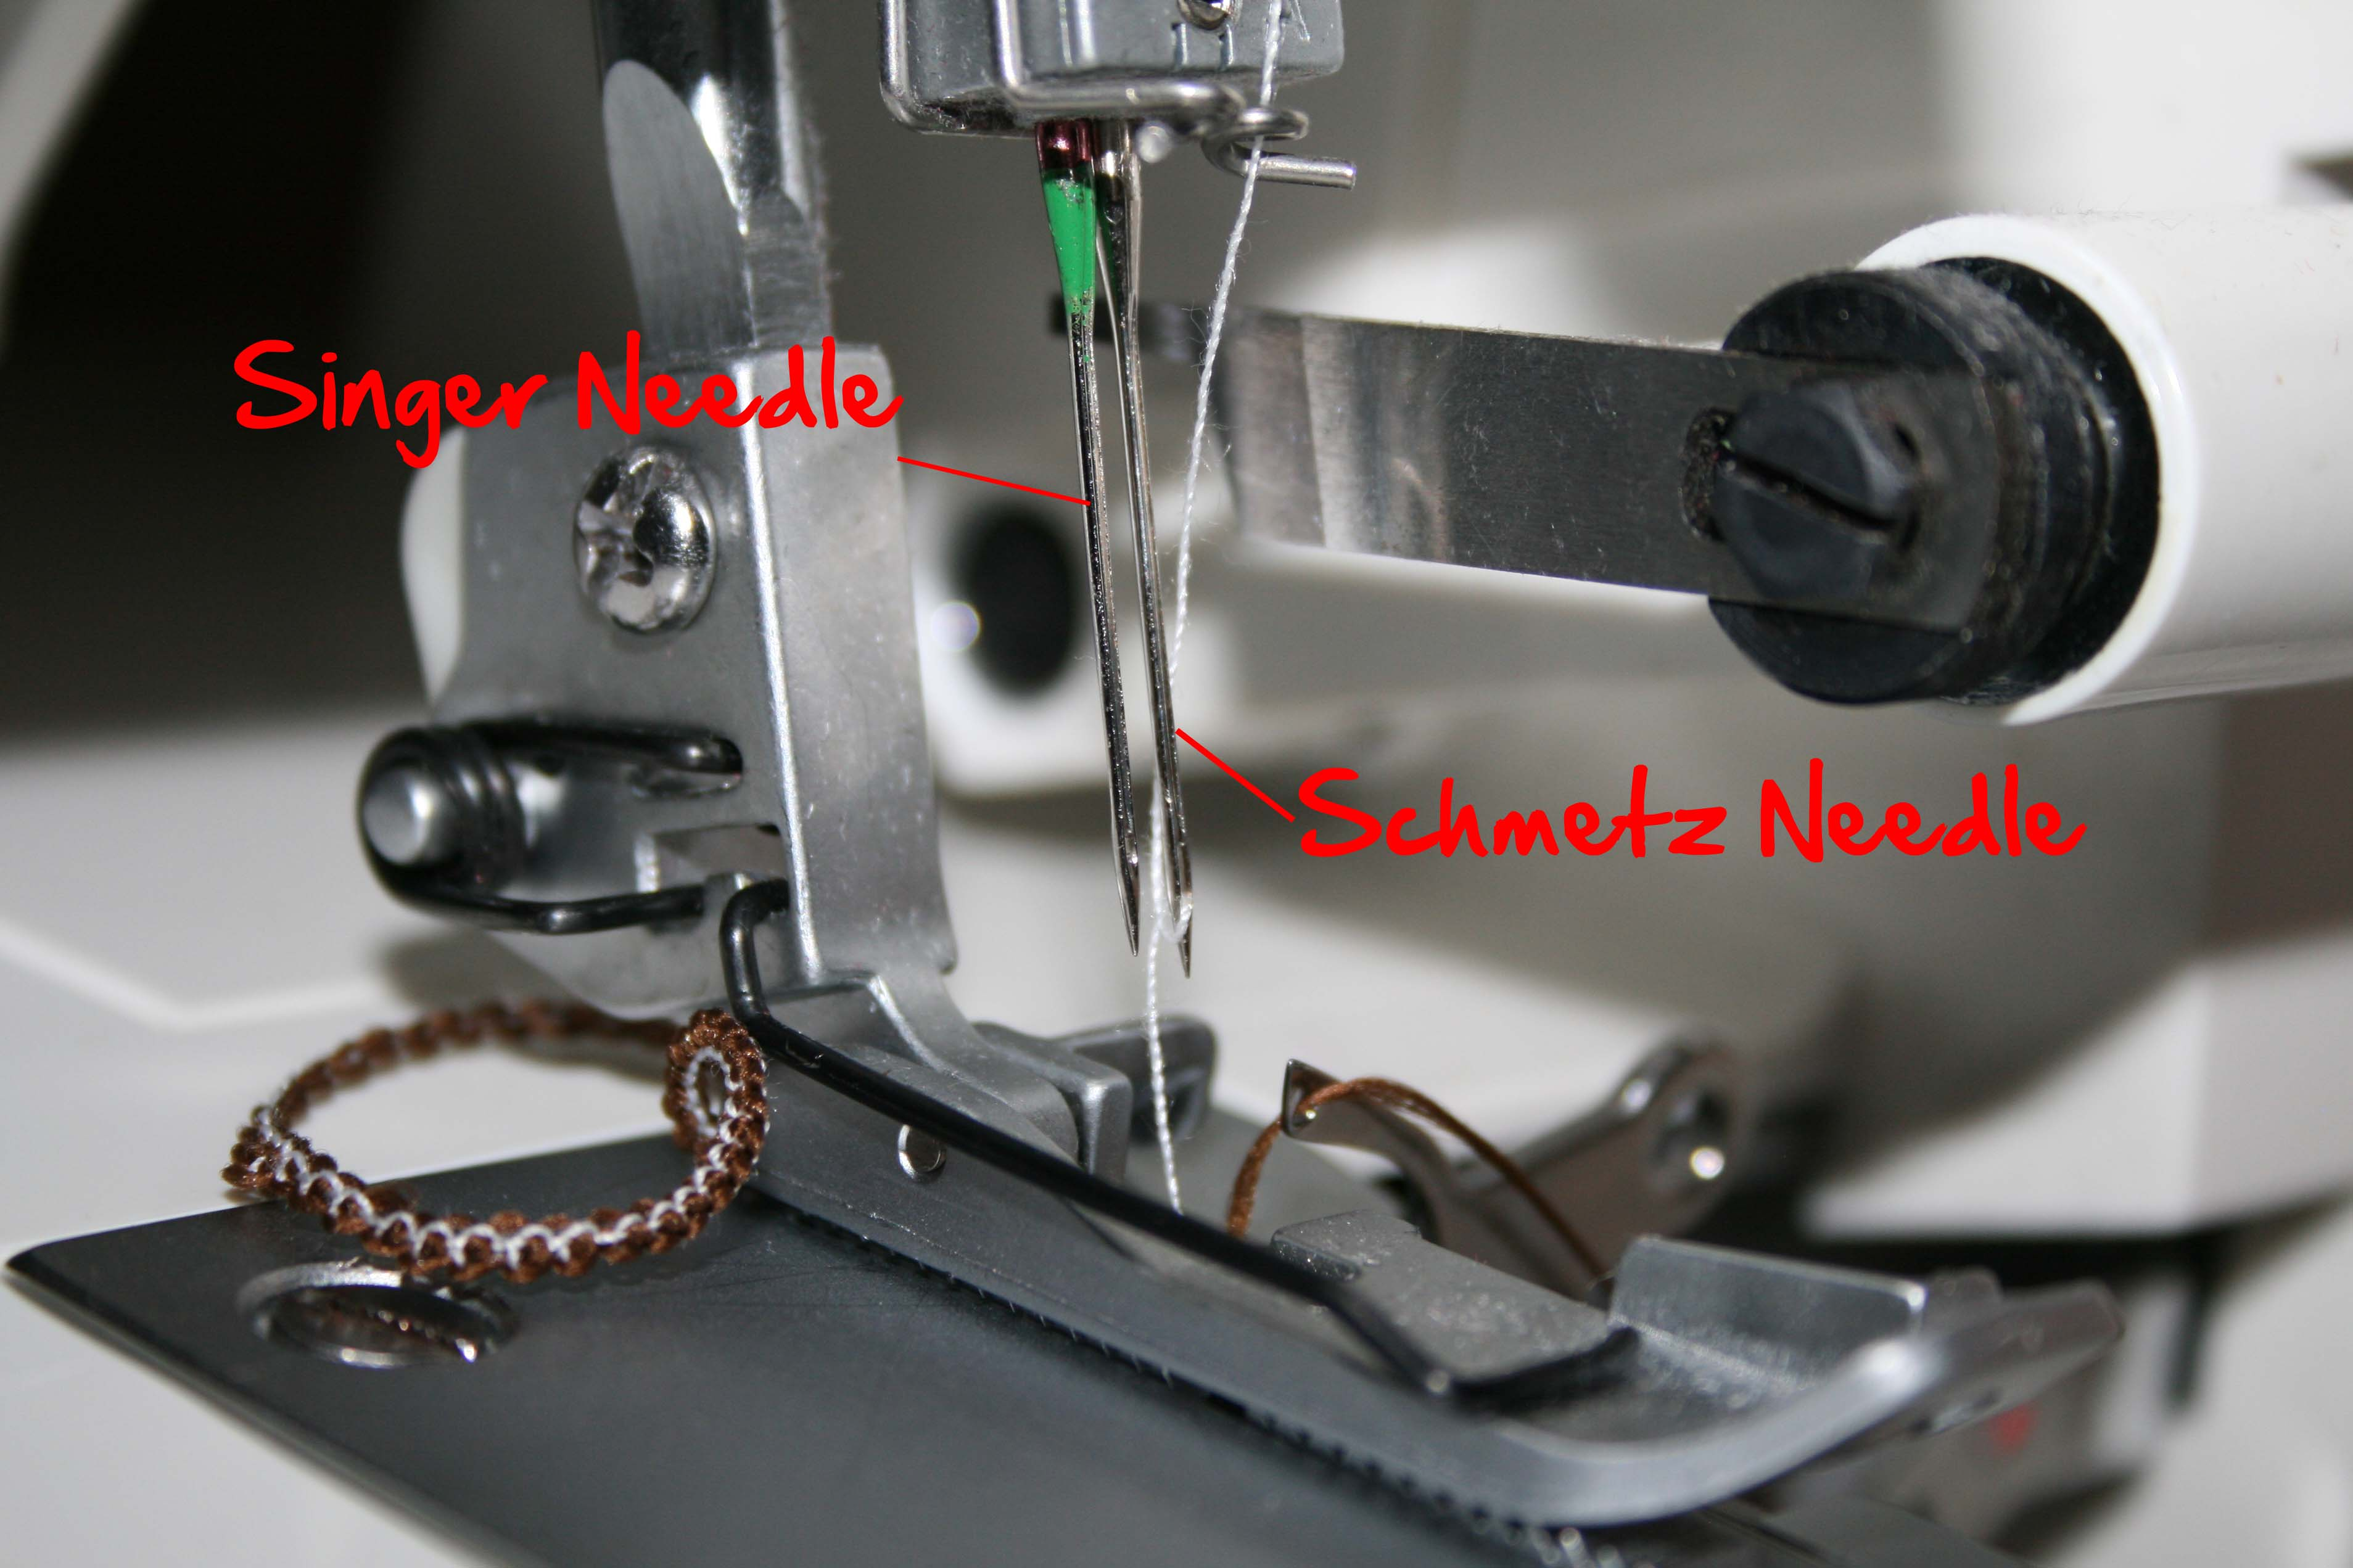 What Needles Can Be Used With a Serger?